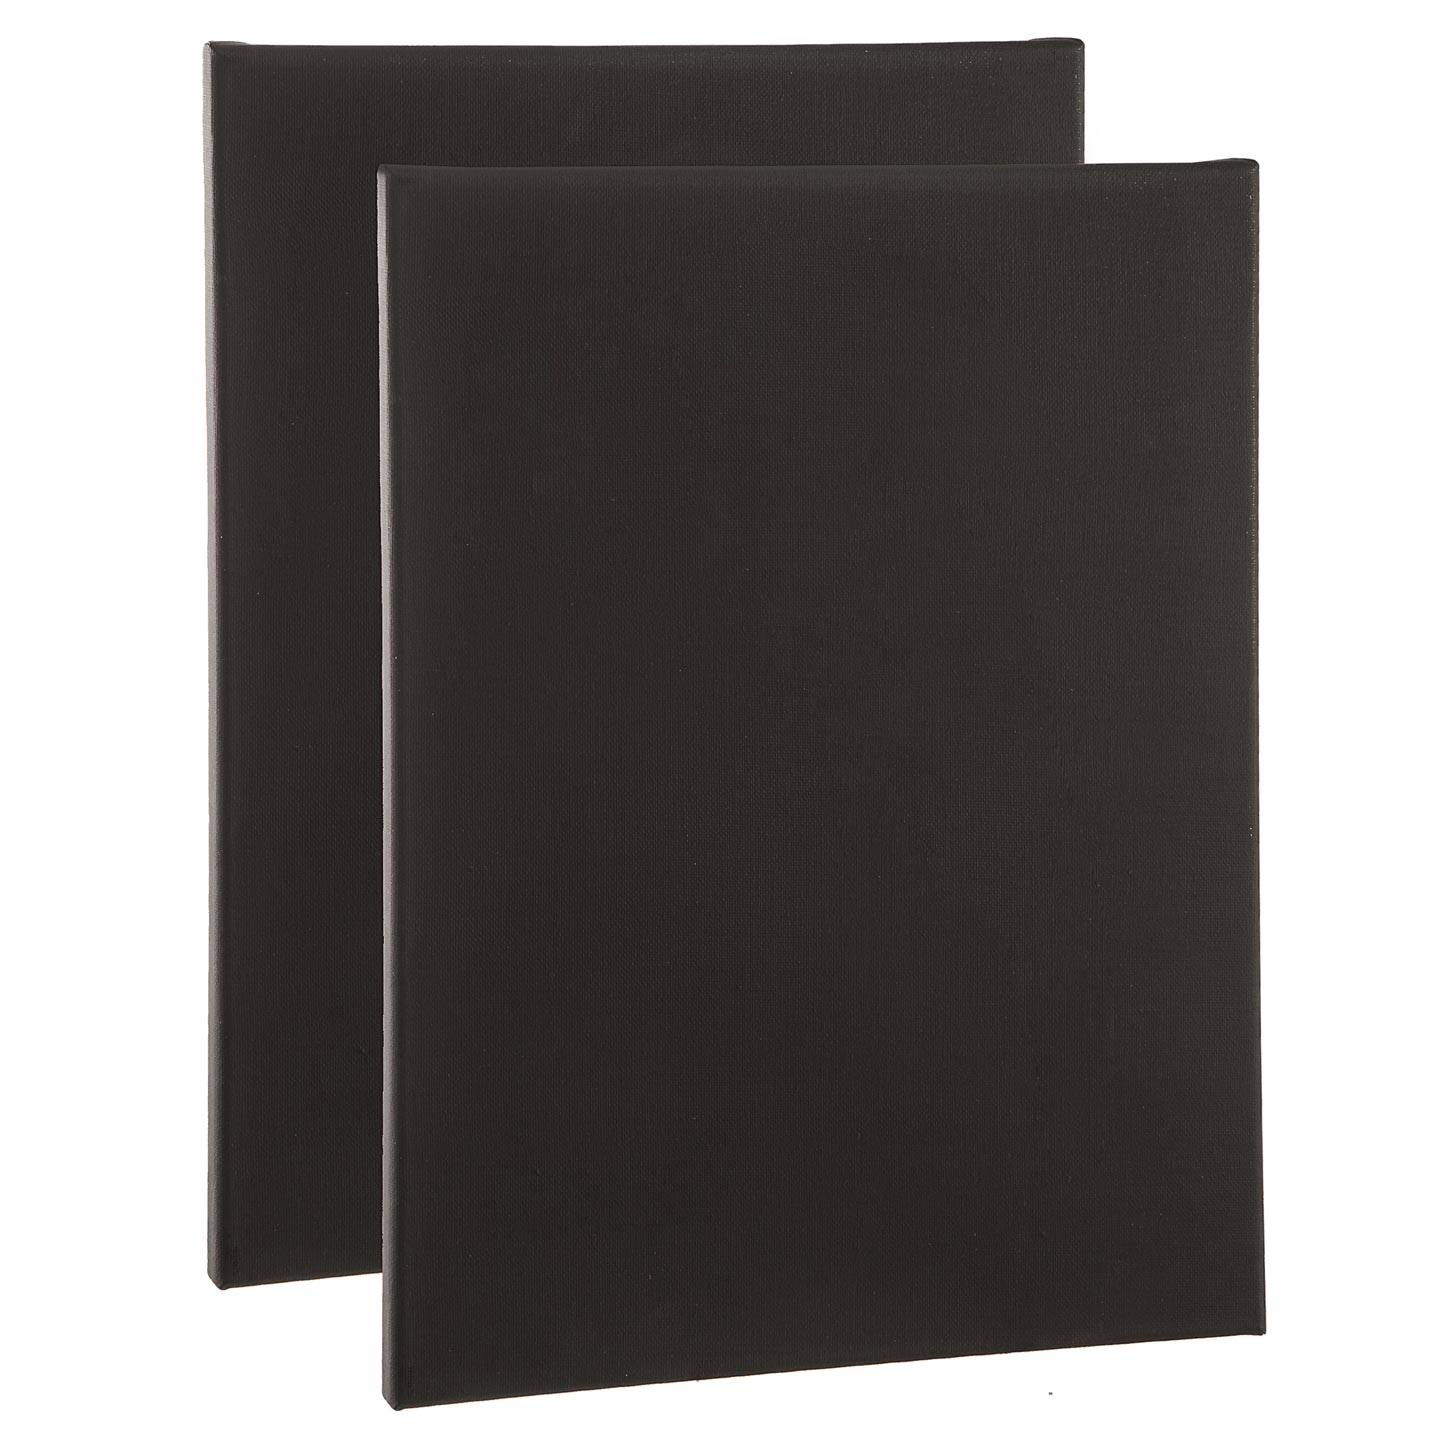 Studio 71 Stretched Canvas: Black, 9 x 12 Inches, 2 Pieces